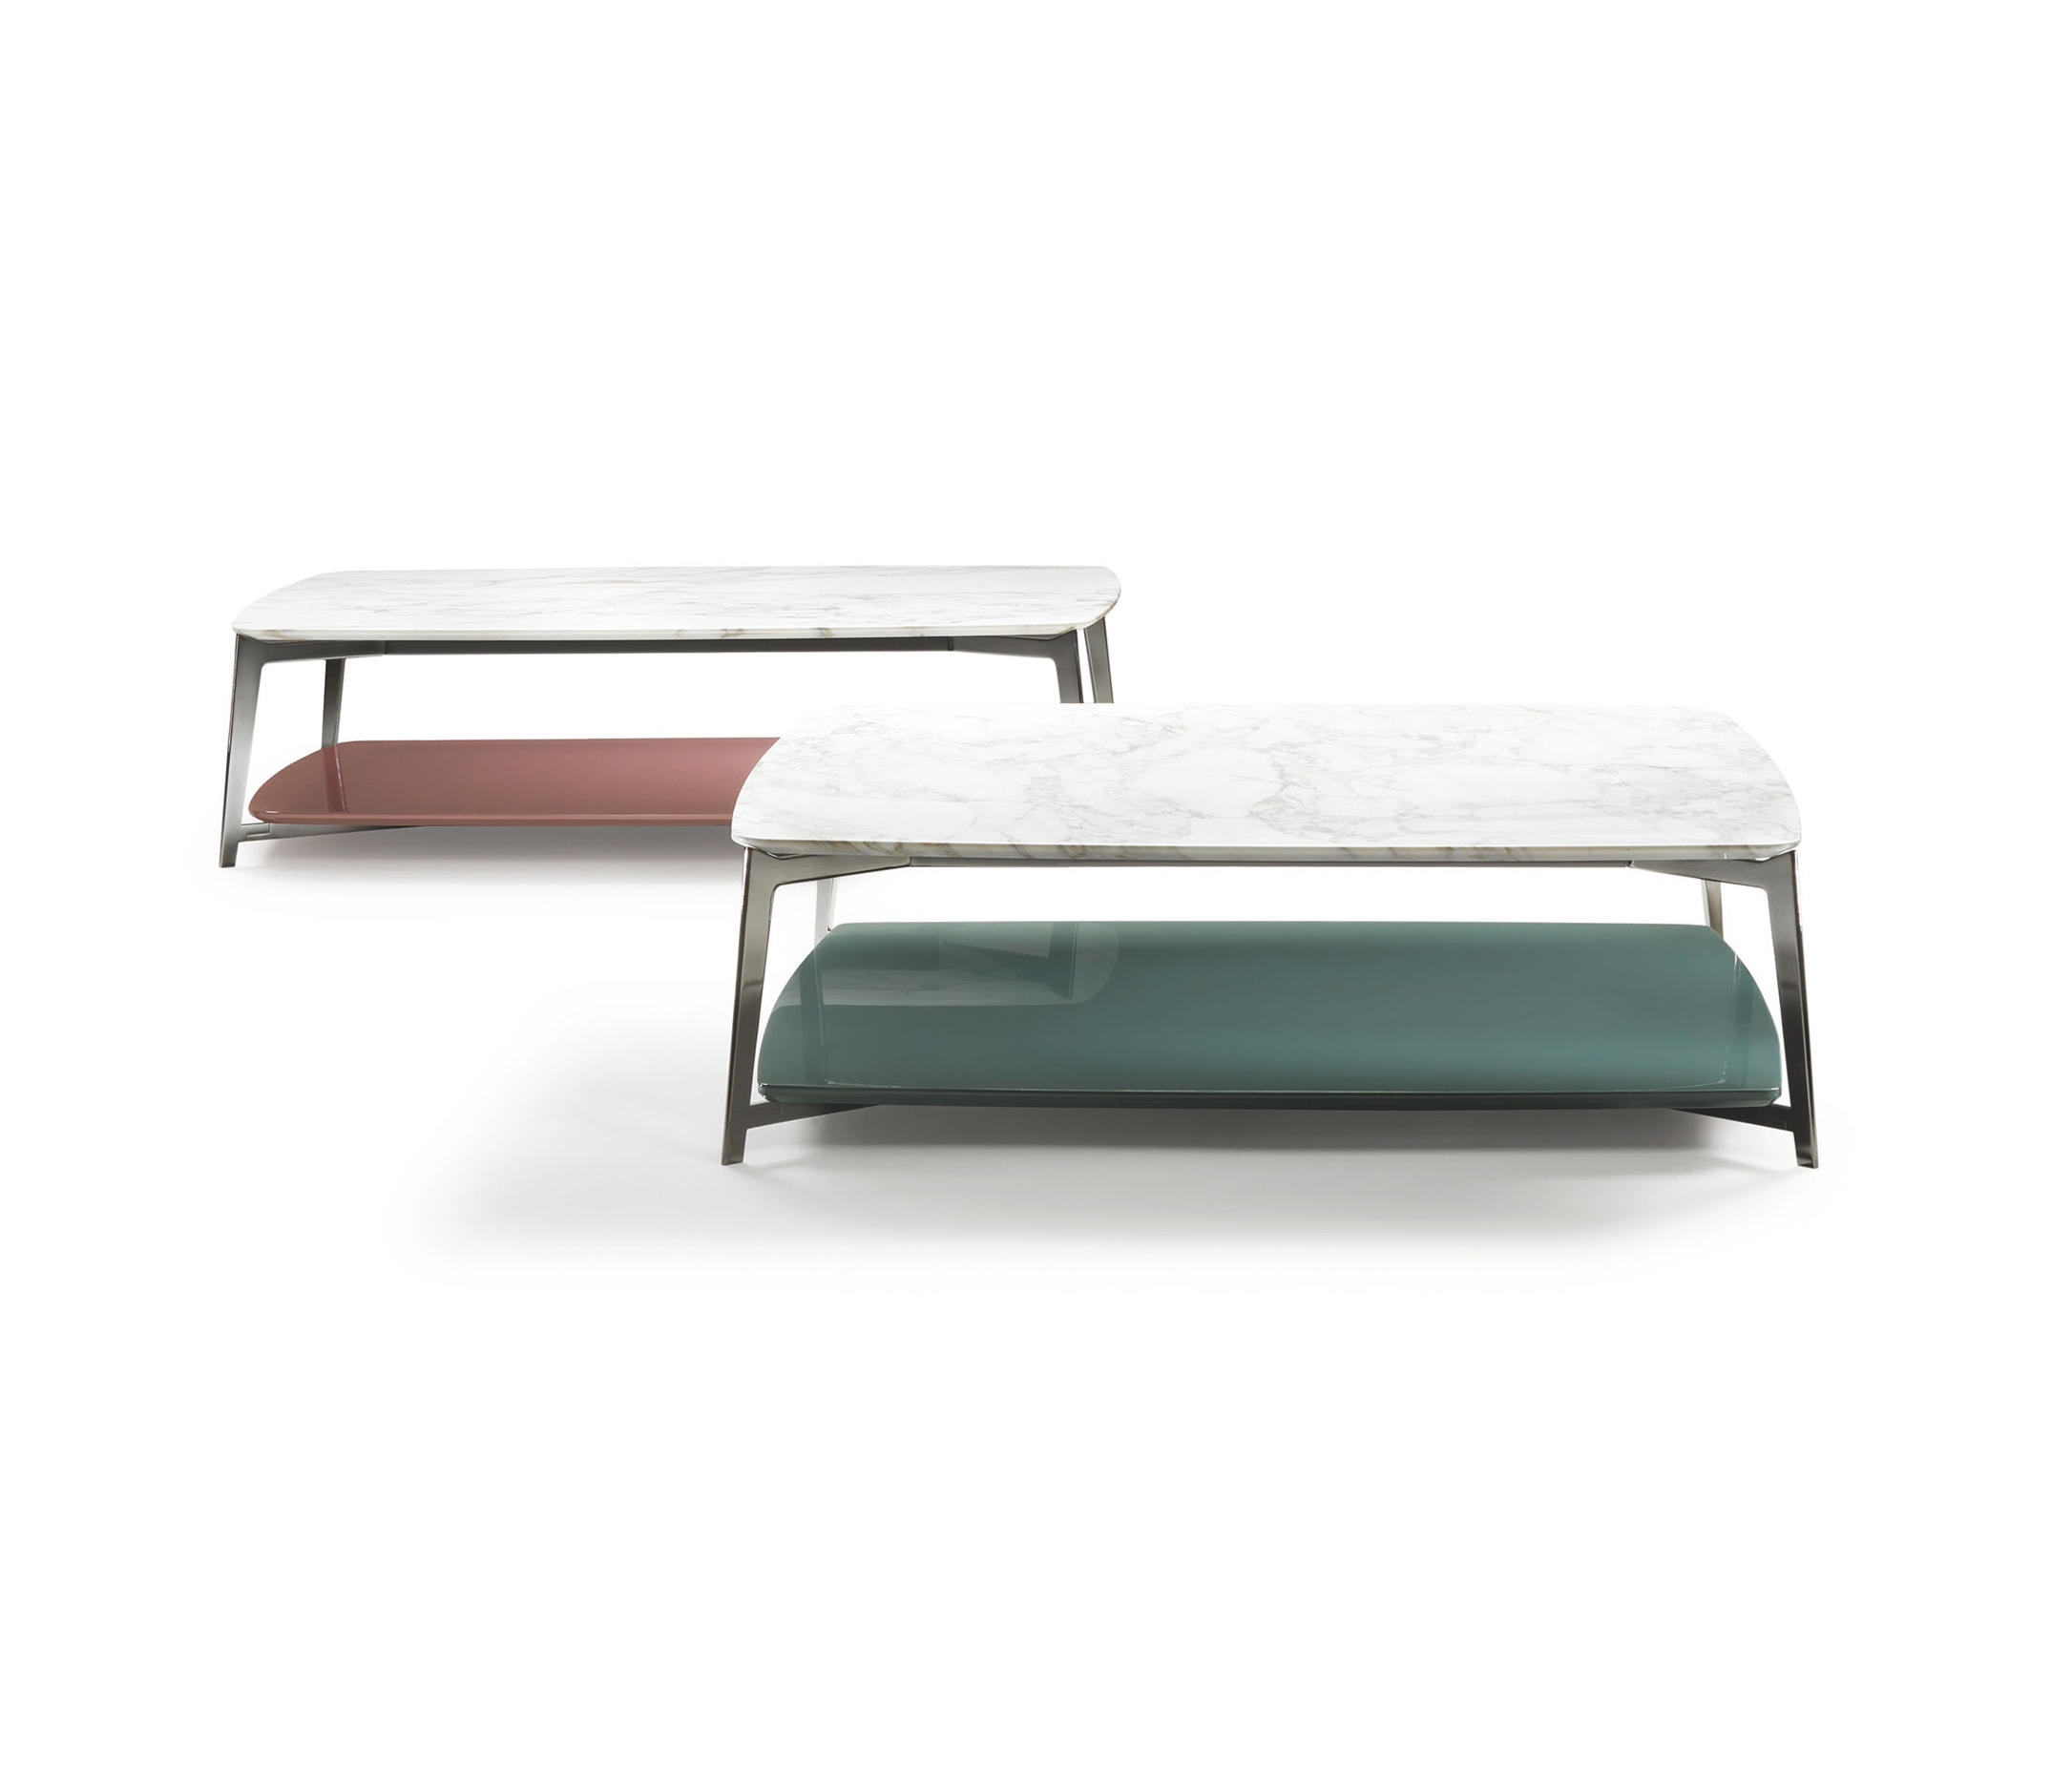 DOUBLE SMAL TABLE Lounge tables from Flexform